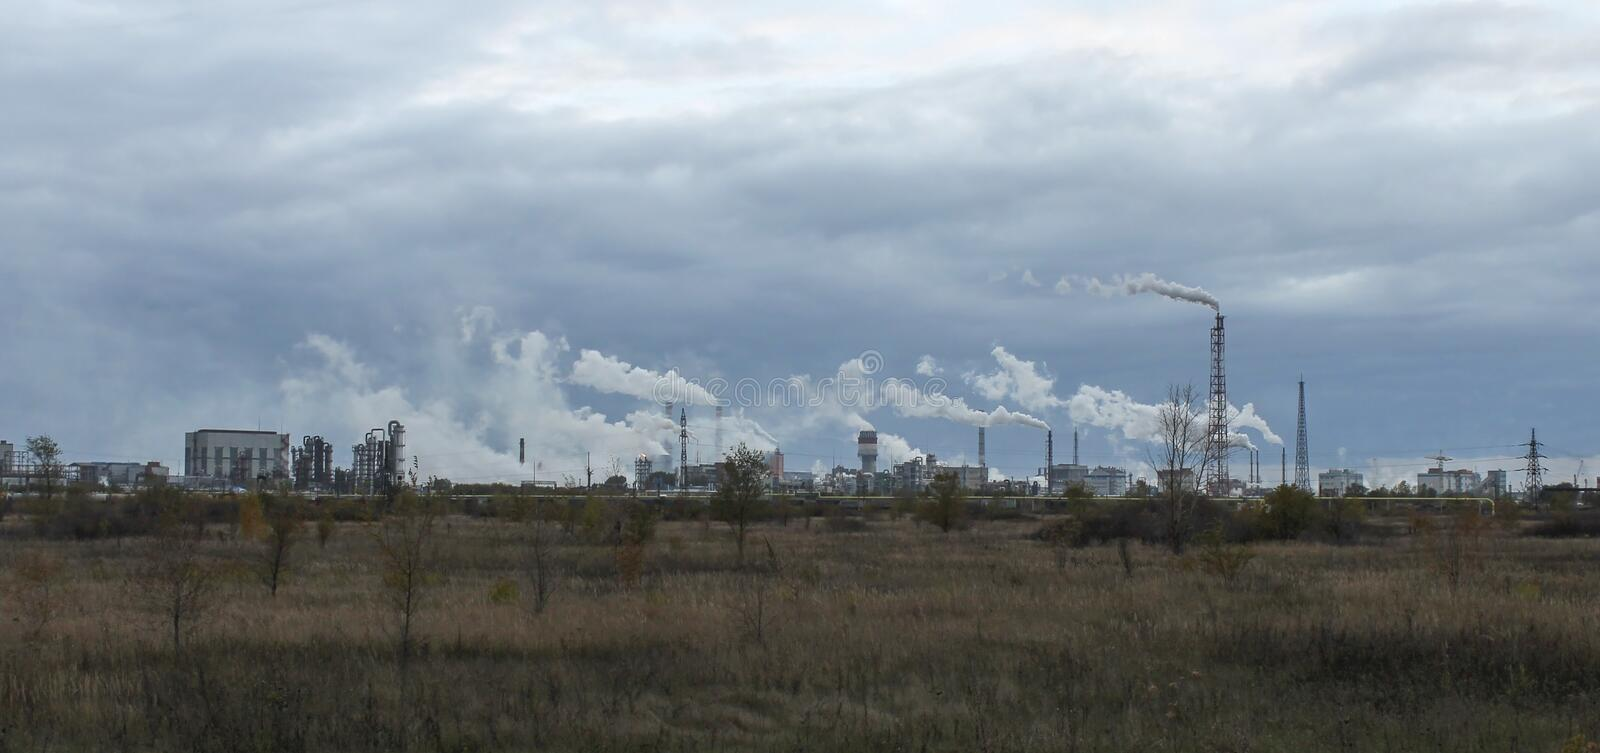 Chemical plants in Togliatti. Industrial zone with factories and pipes with smoke and illumination at cloudy day royalty free stock photo